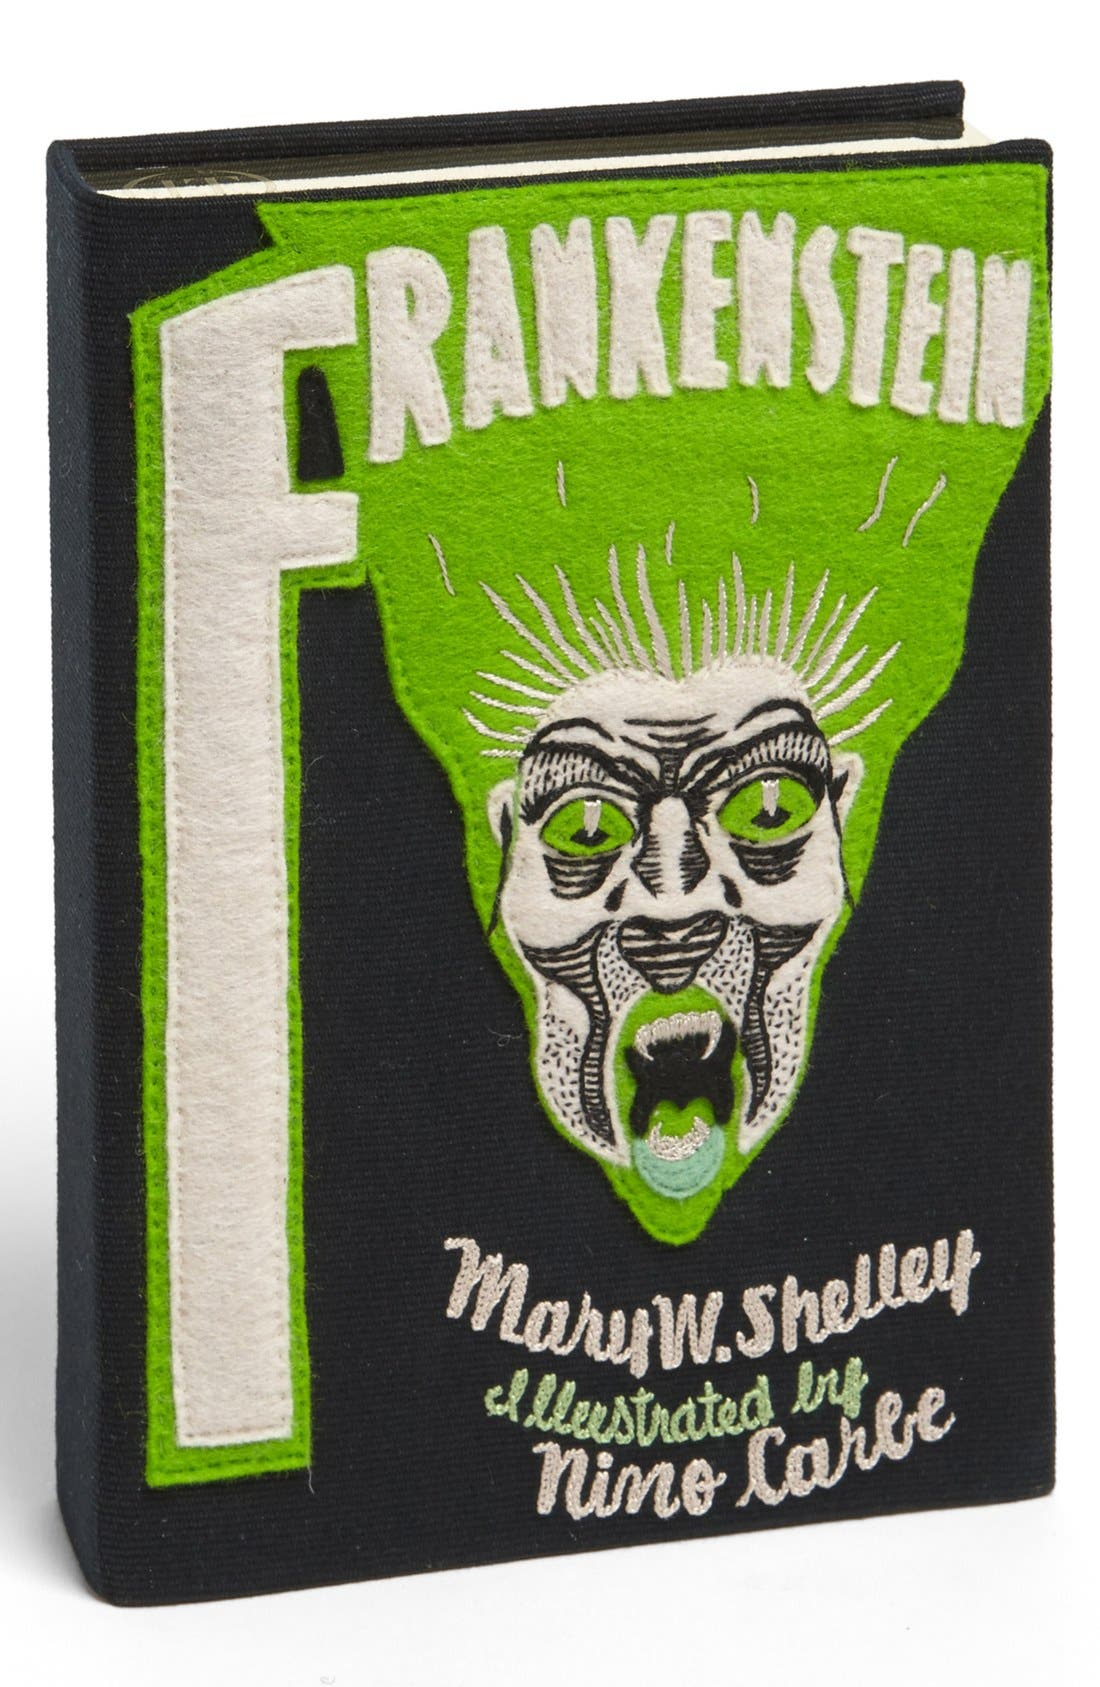 Alternate Image 1 Selected - Olympia Le-Tan 'Frankenstein' Limited Edition Clutch